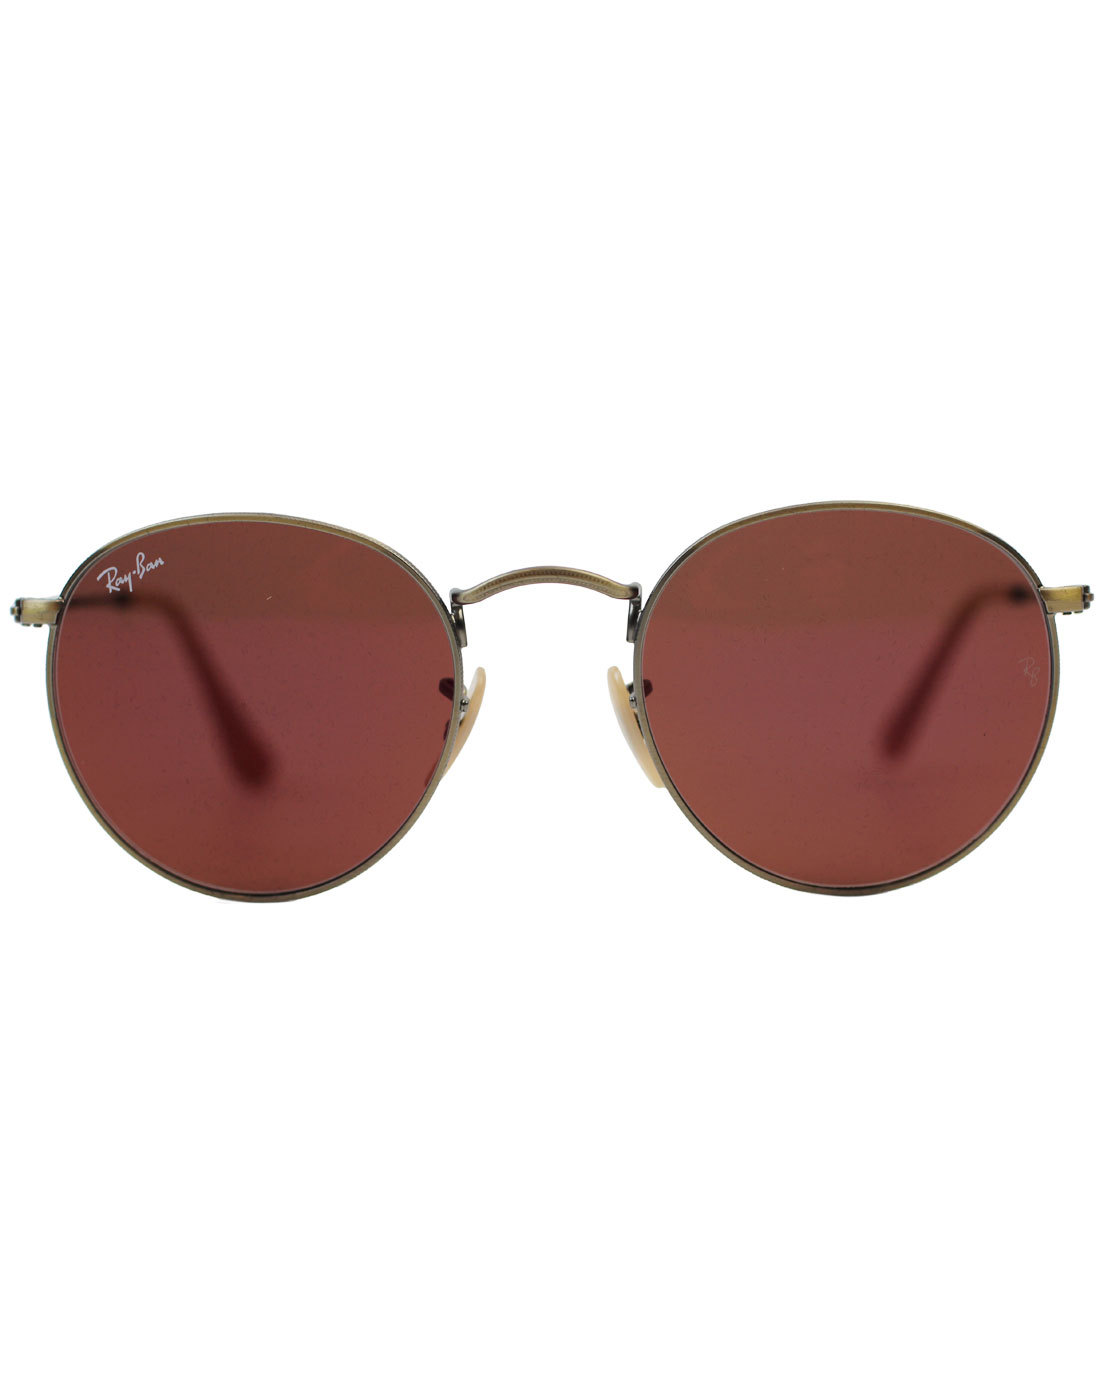 55c8648abd27 RAY-BAN 60s Mod RB3447 Red Mirror Round Sunglasses Brushed Bronze